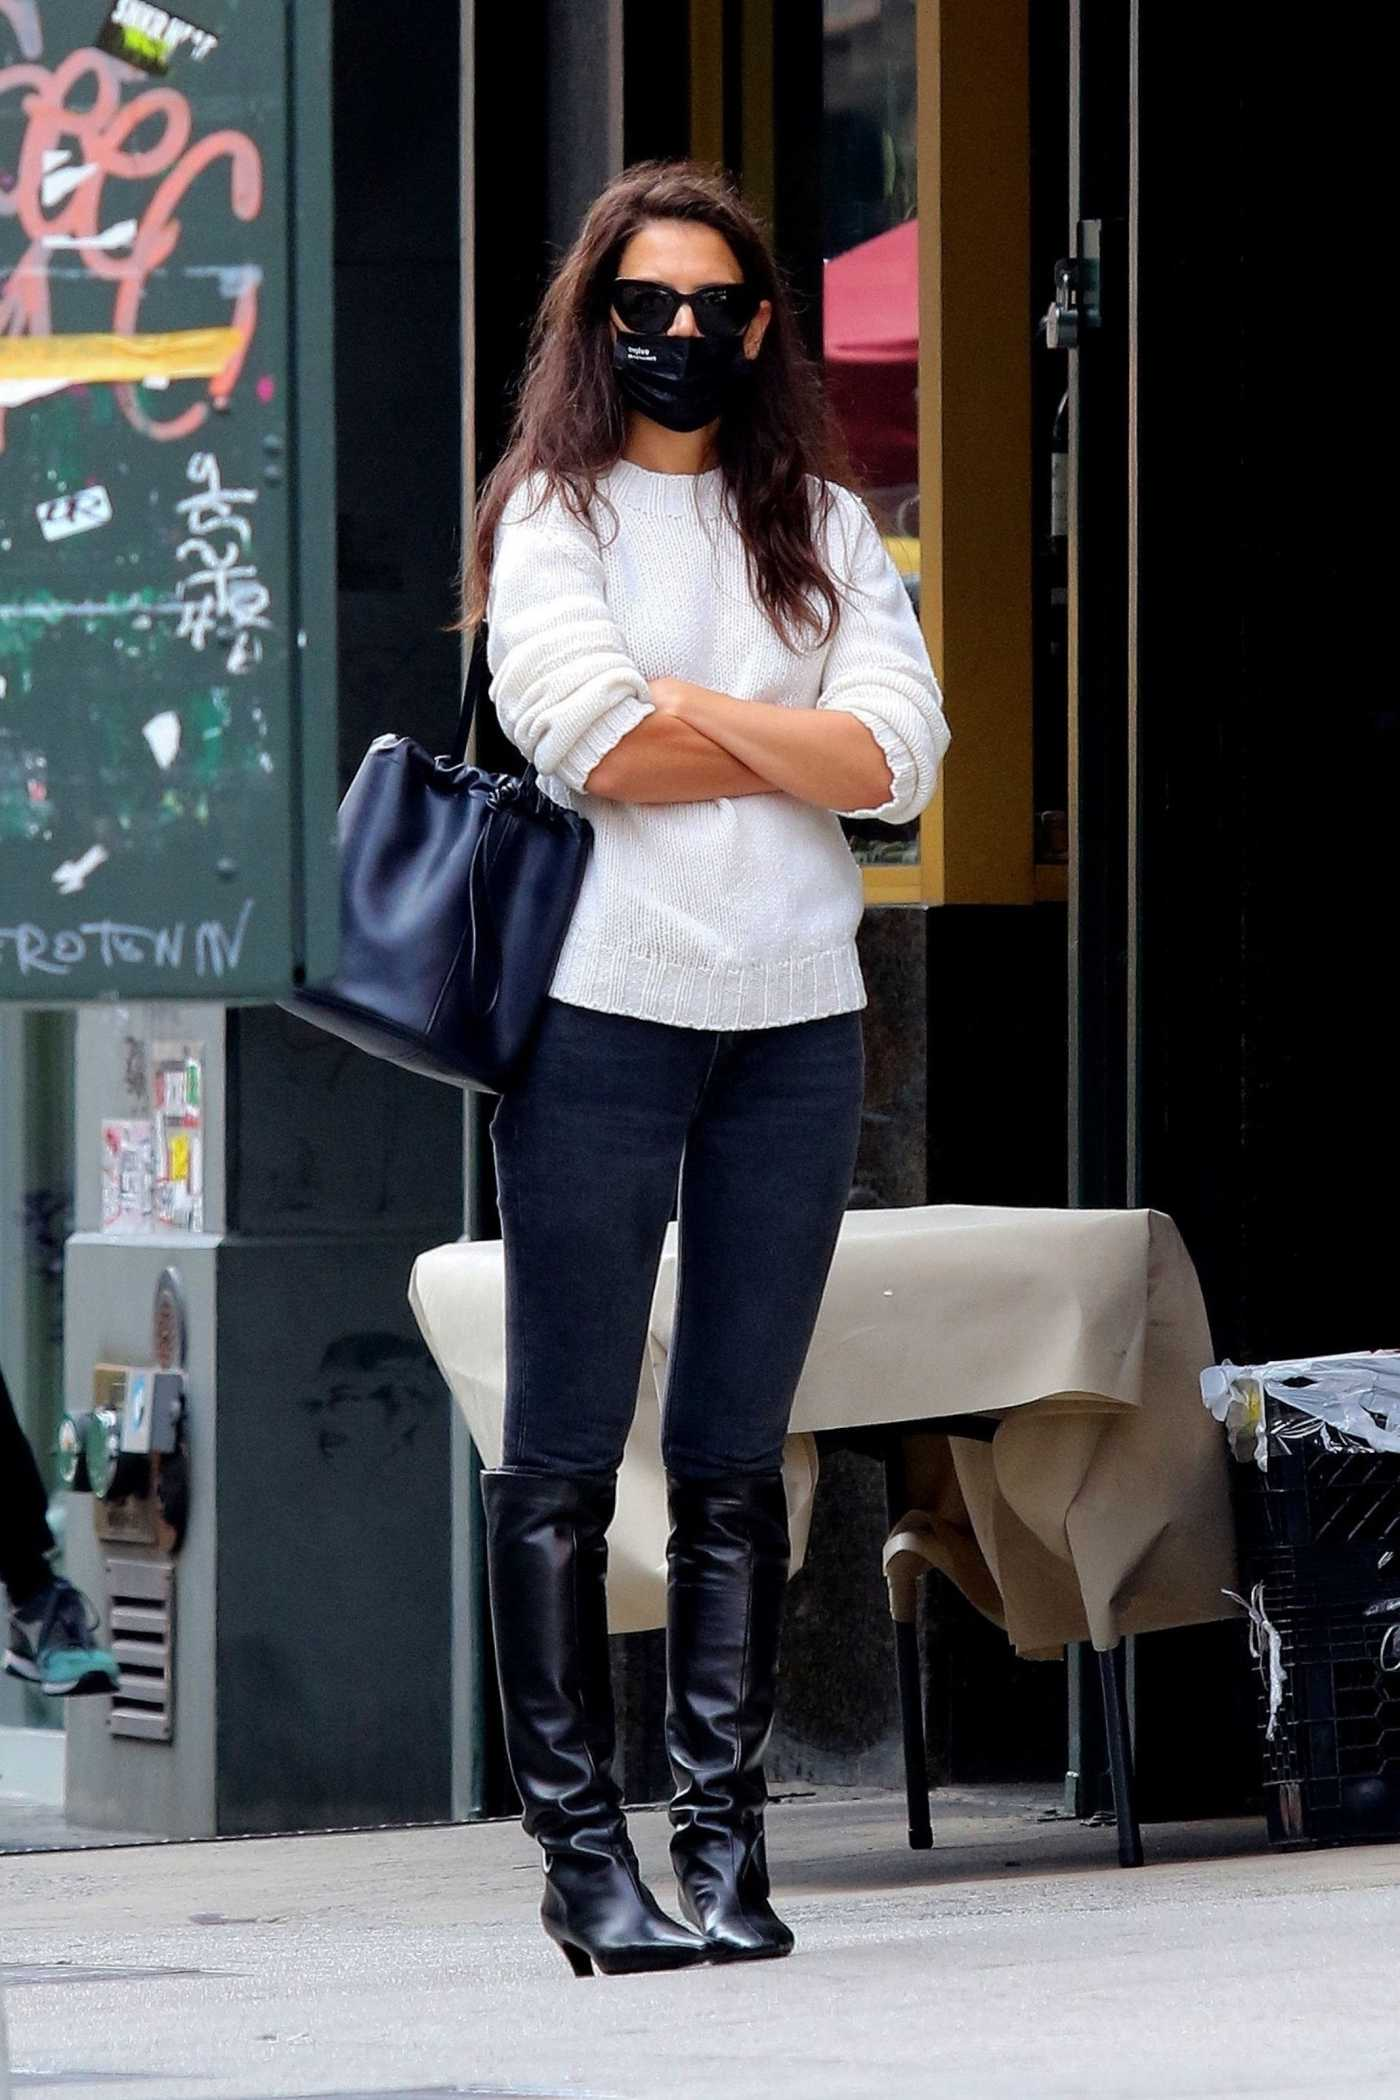 Katie Holmes in a Black Boots Goes Shopping Out in New York City 09/18/2020